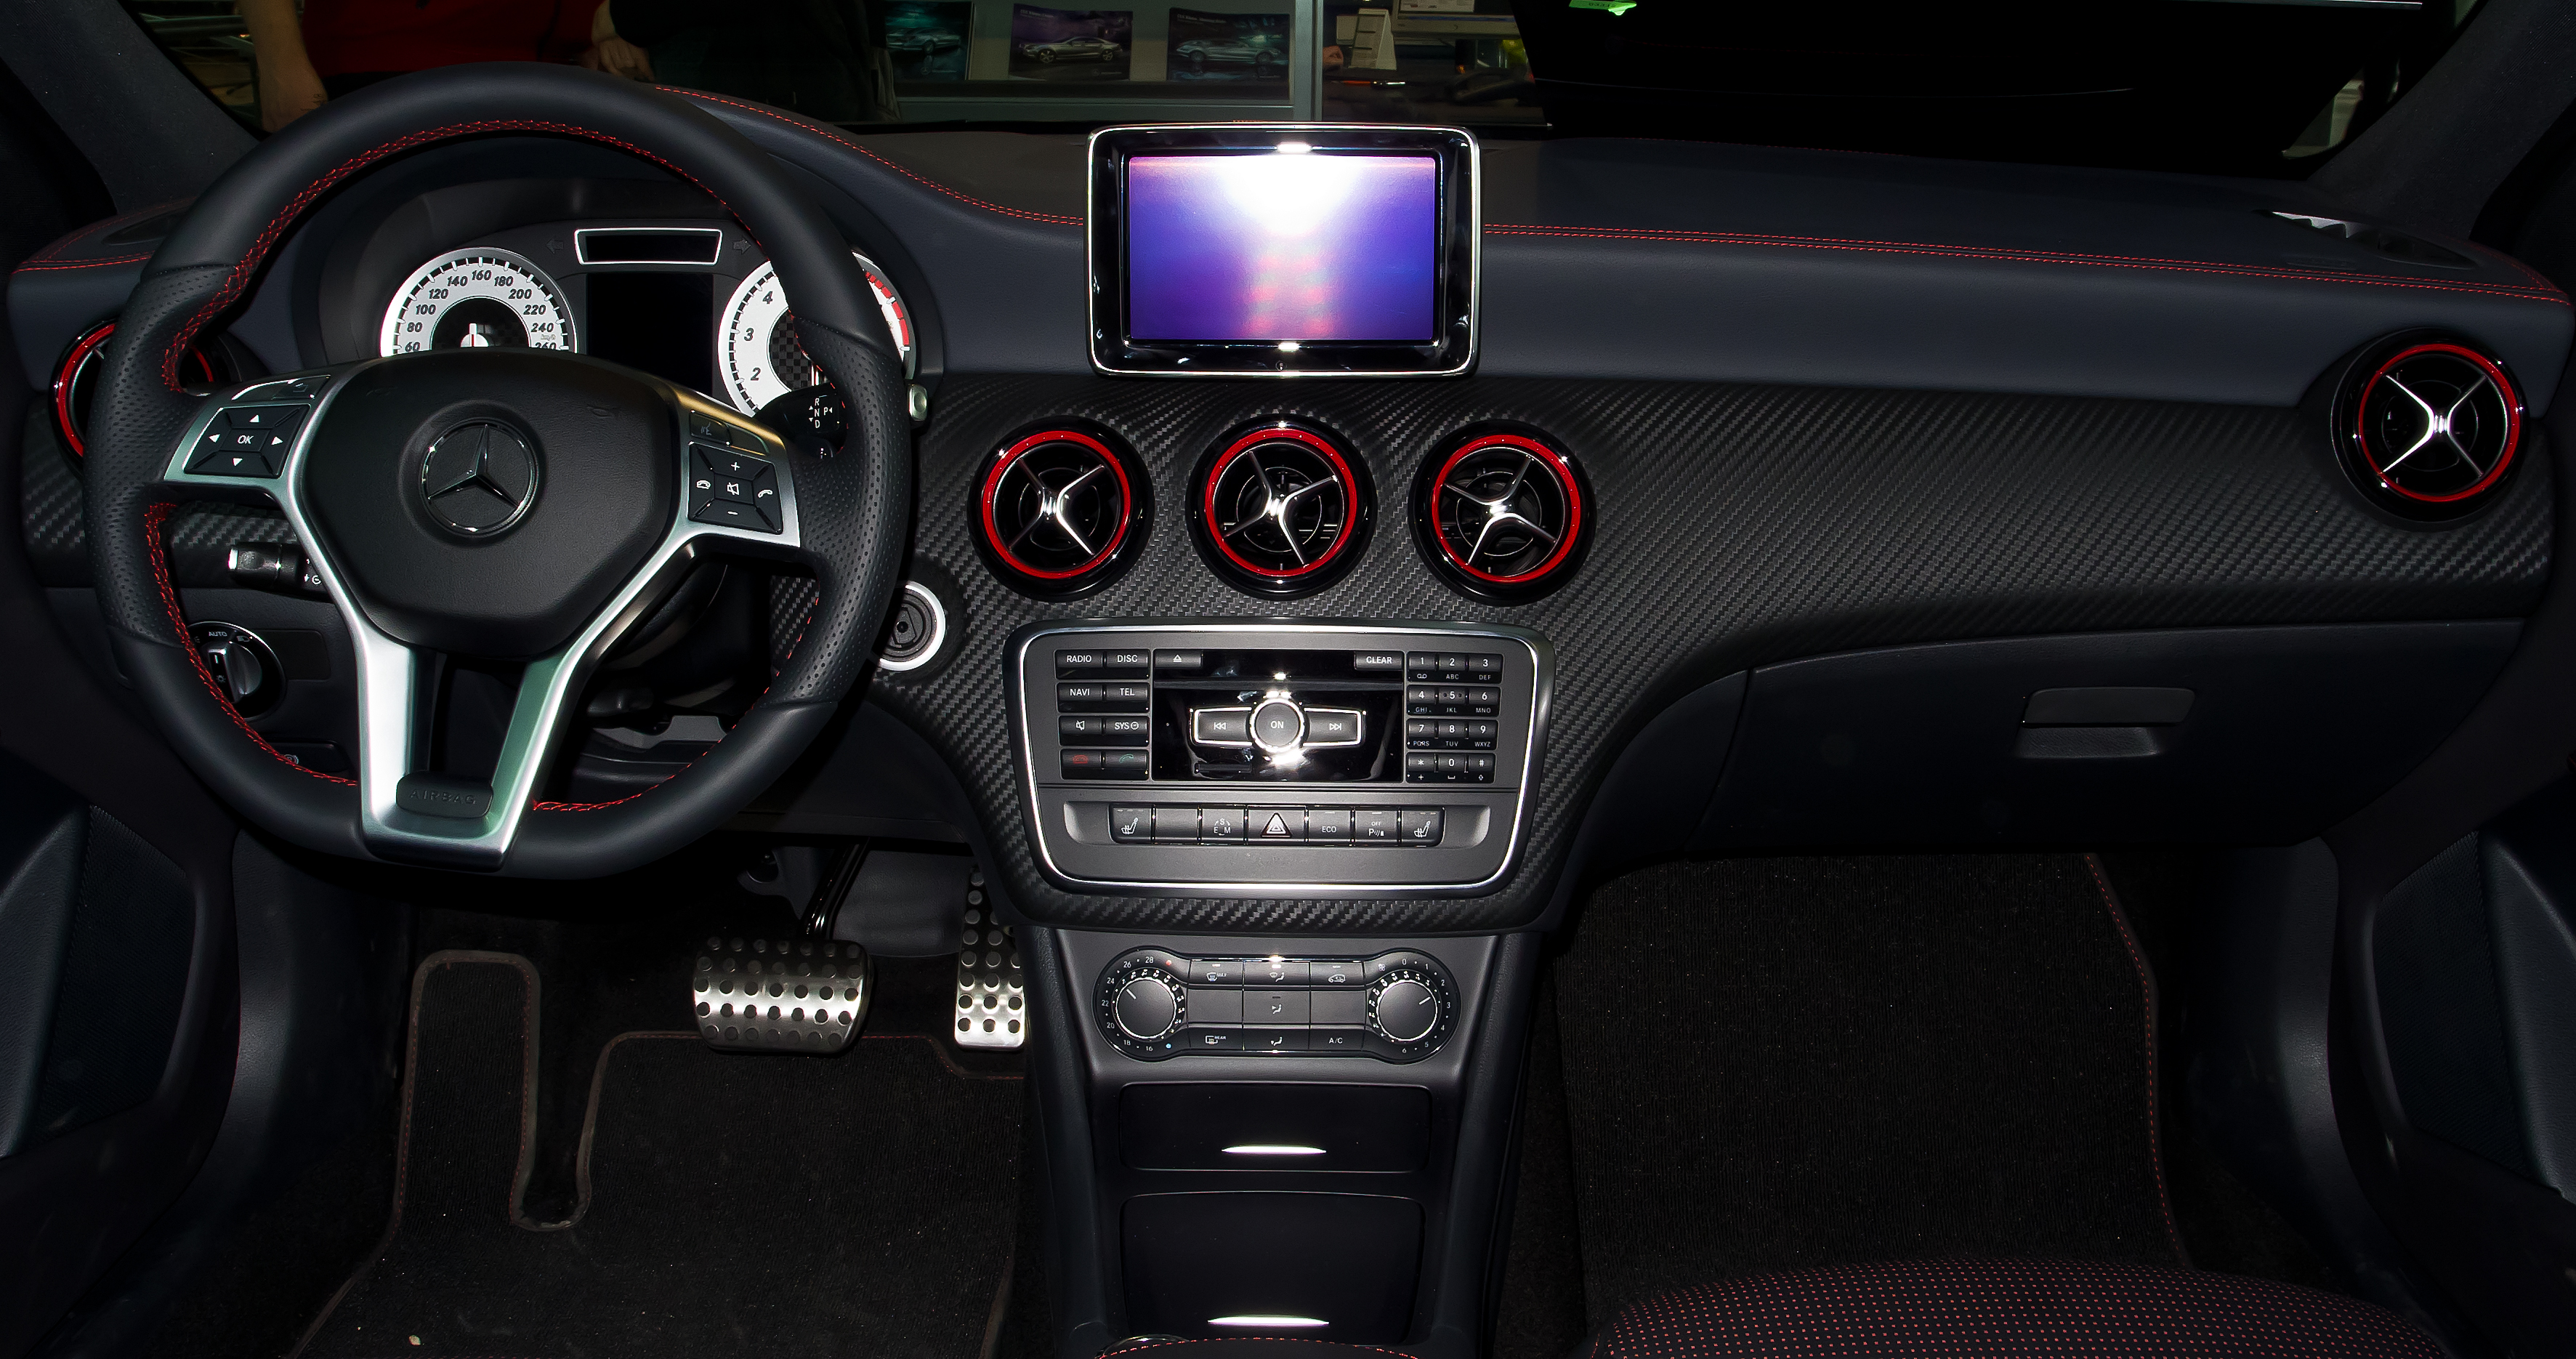 datei mercedes benz a 250 sport w 176 innenraum 13 april 2013 d wikipedia. Black Bedroom Furniture Sets. Home Design Ideas